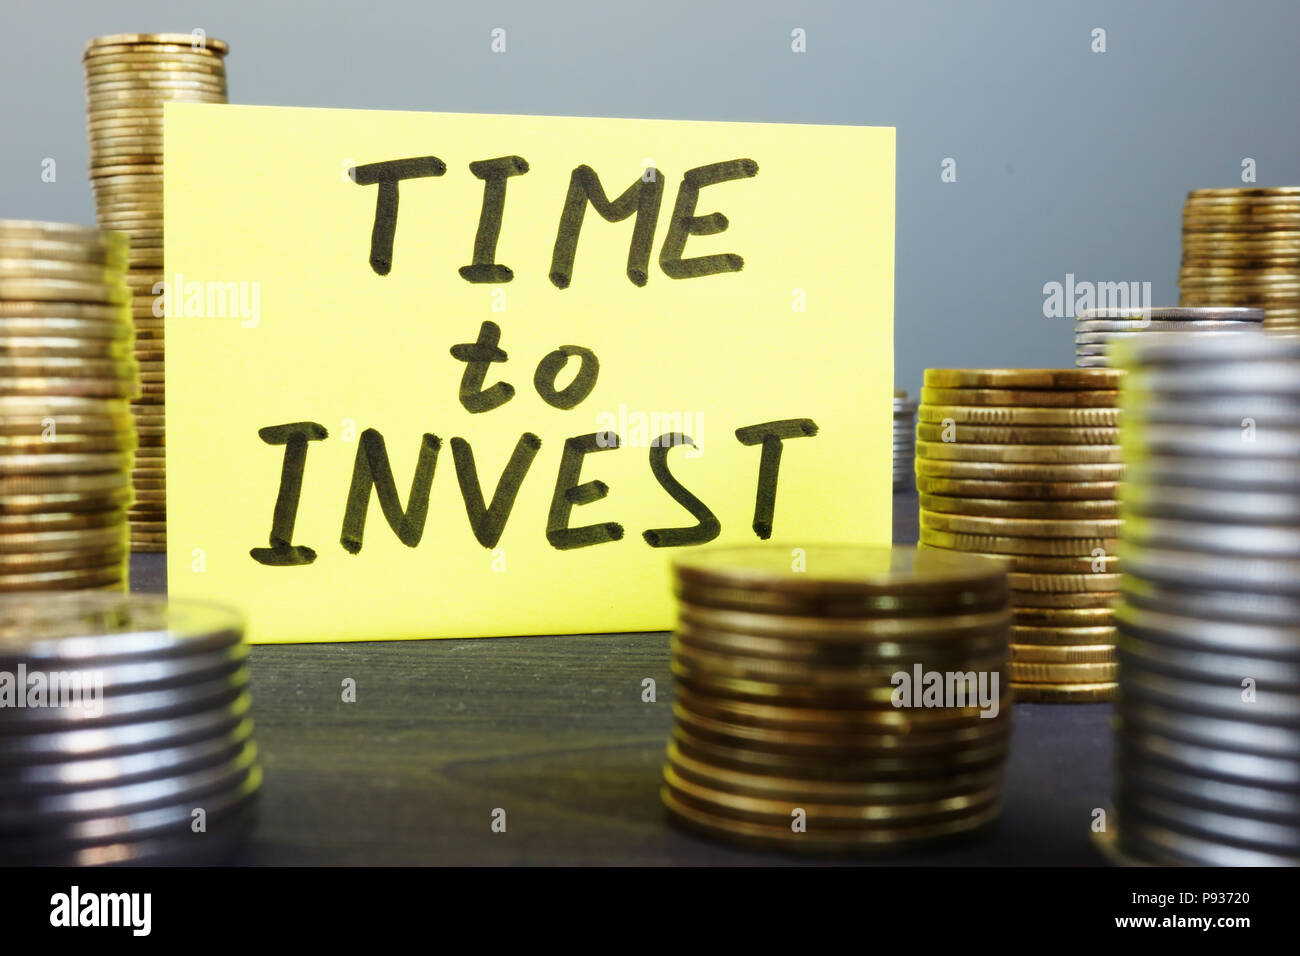 Time to invest. Money and memo stick. - Stock Image